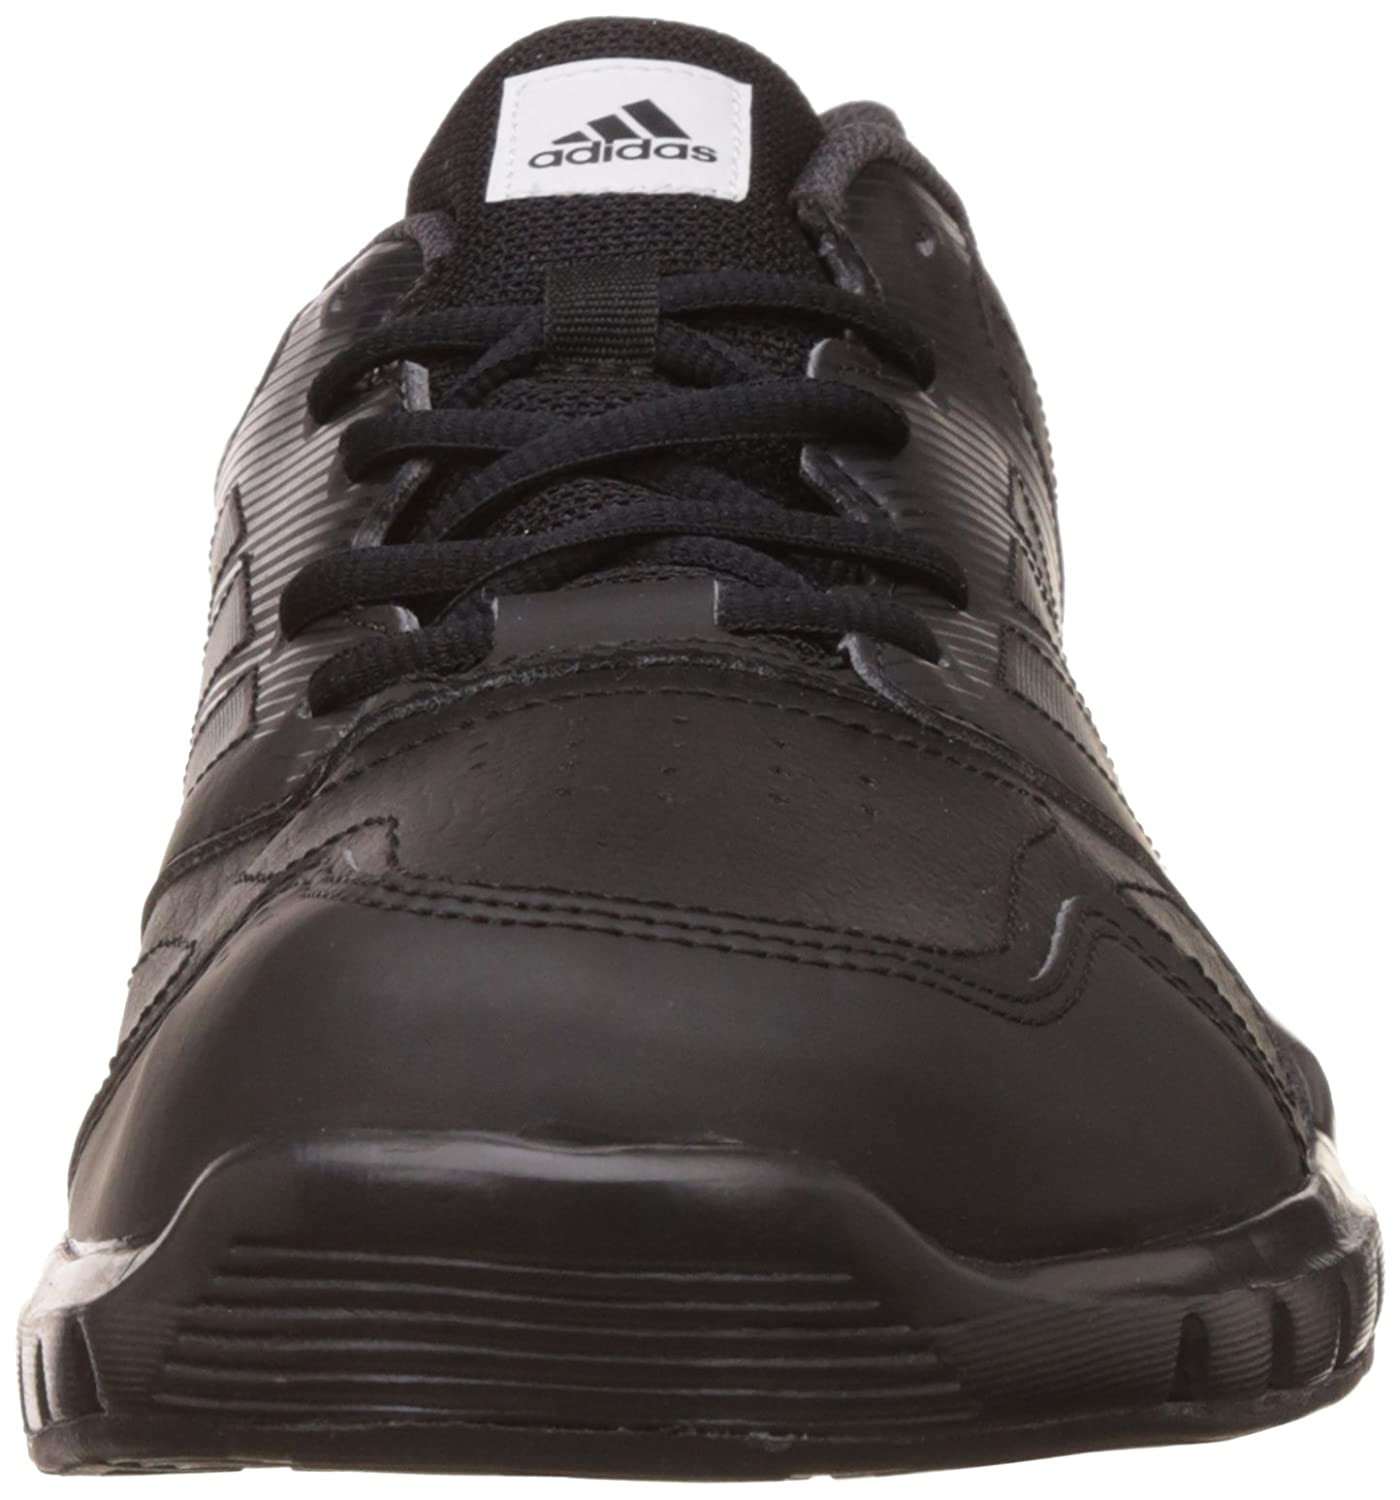 Mens Essential Star 3 M Fitness Shoes adidas Free Shipping Manchester Great Sale Finishline Cheap Online Shop Cheap Price 9jDsh